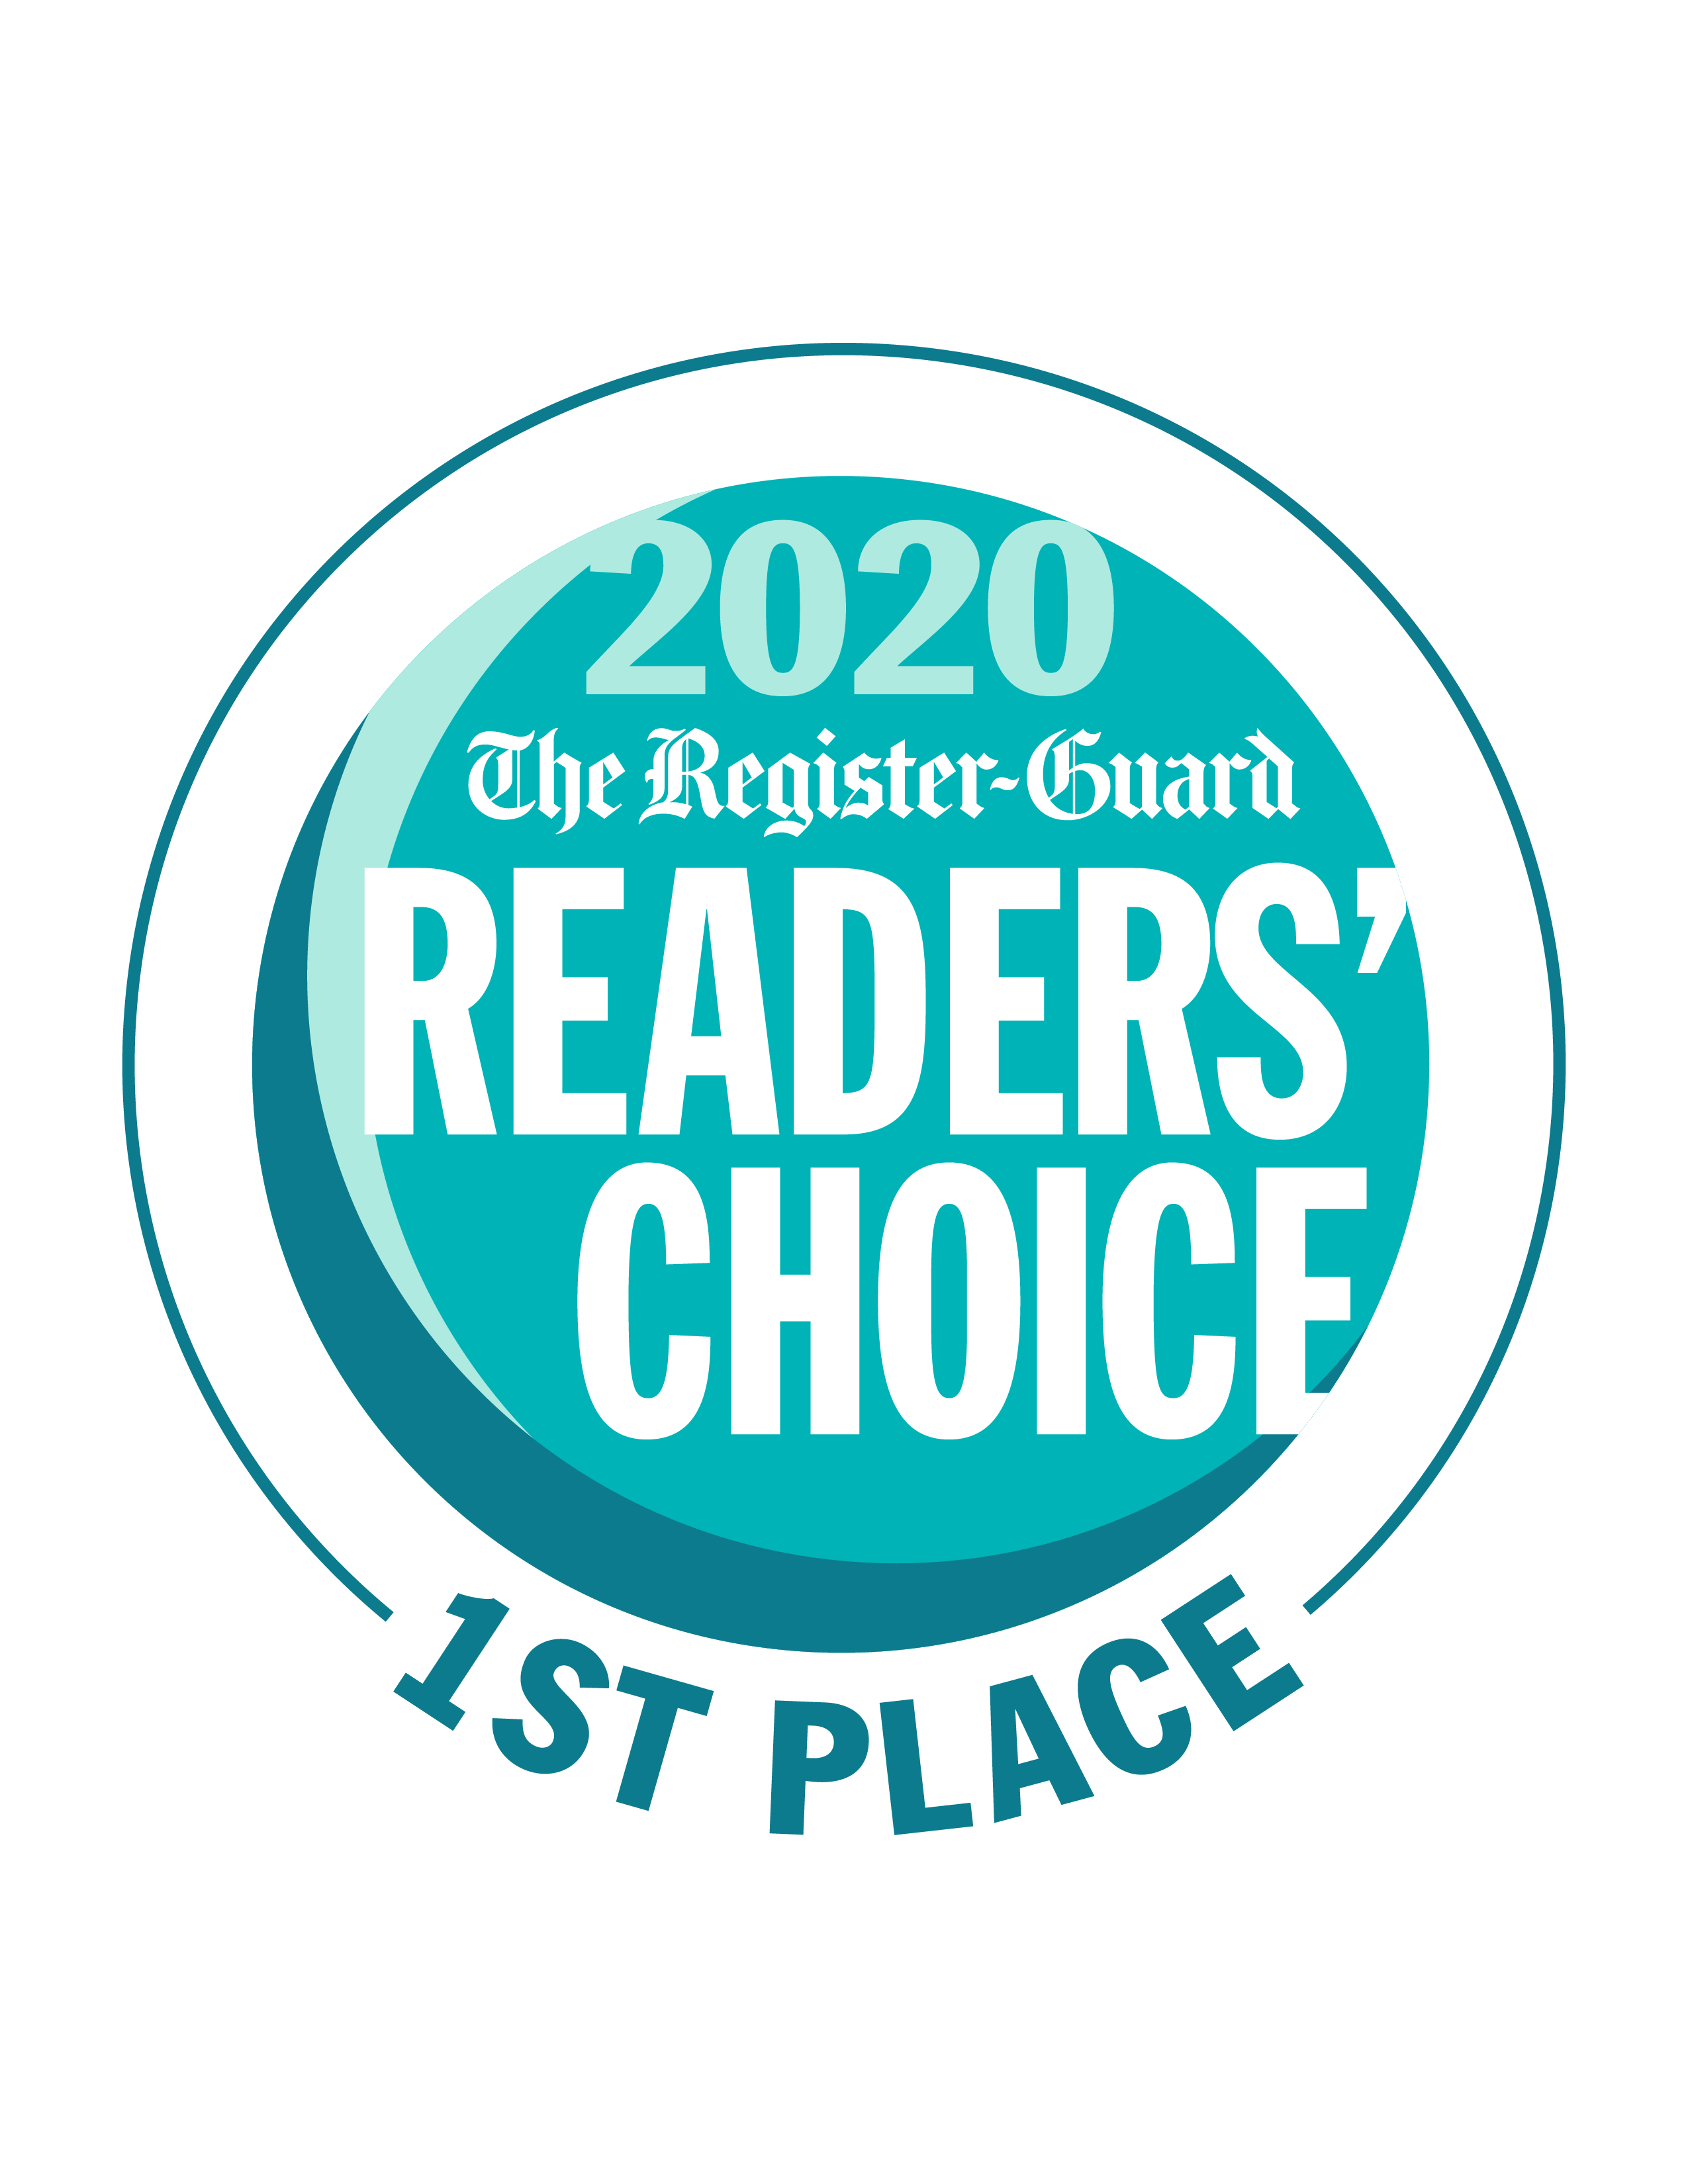 2020 The Register-Guard's Readers' Choice - 1st Place